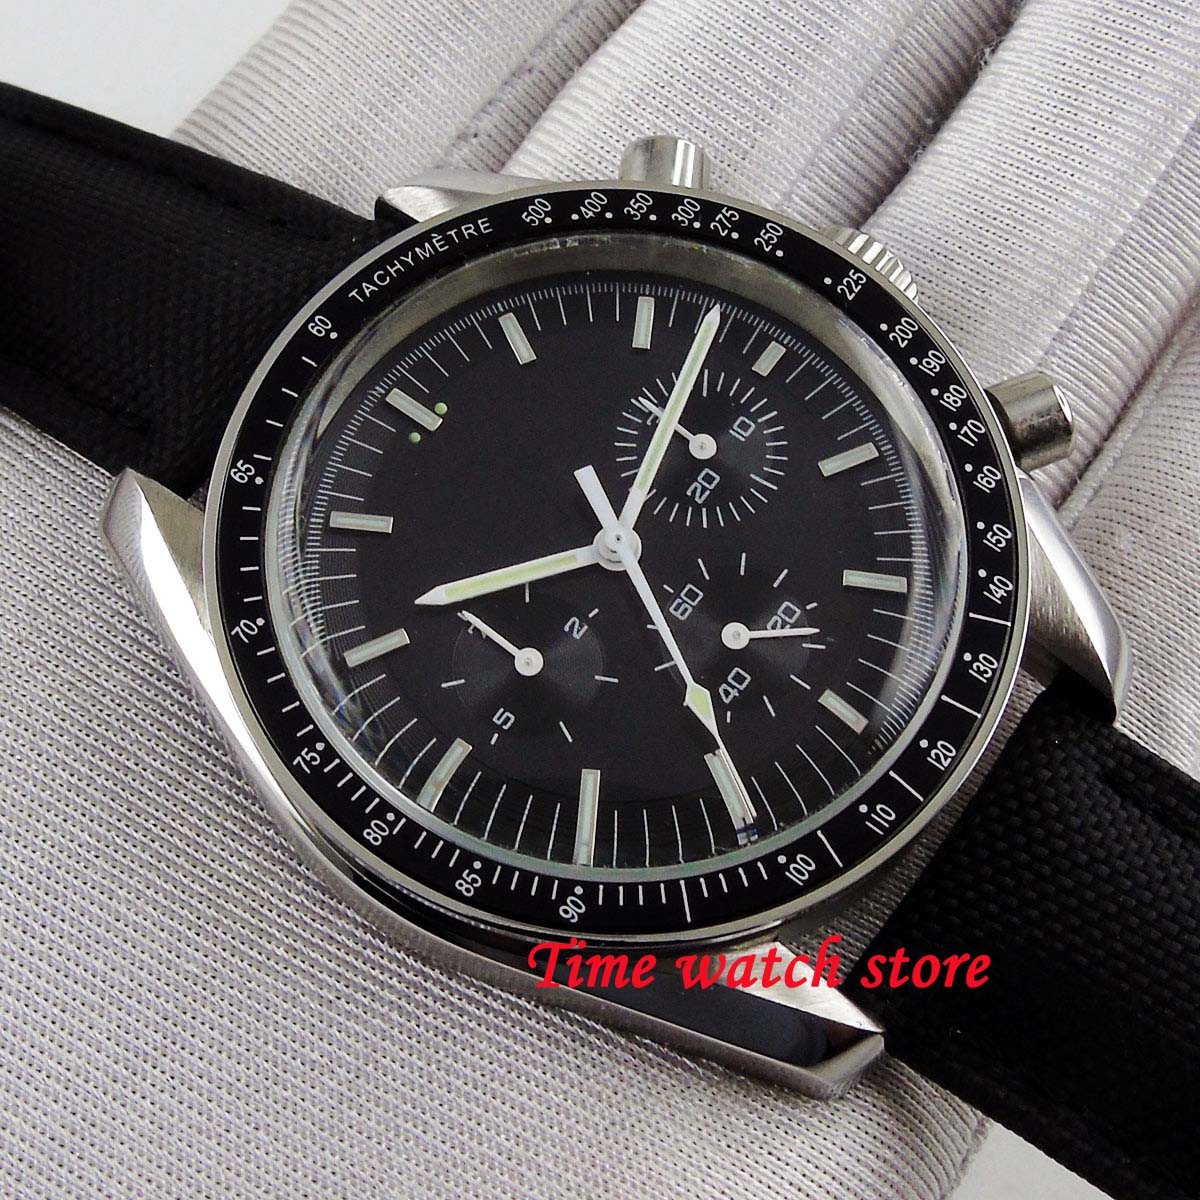 40mm Bliger Multifunction men s watch black dial Arched glass date week Automatic movement wrist watch